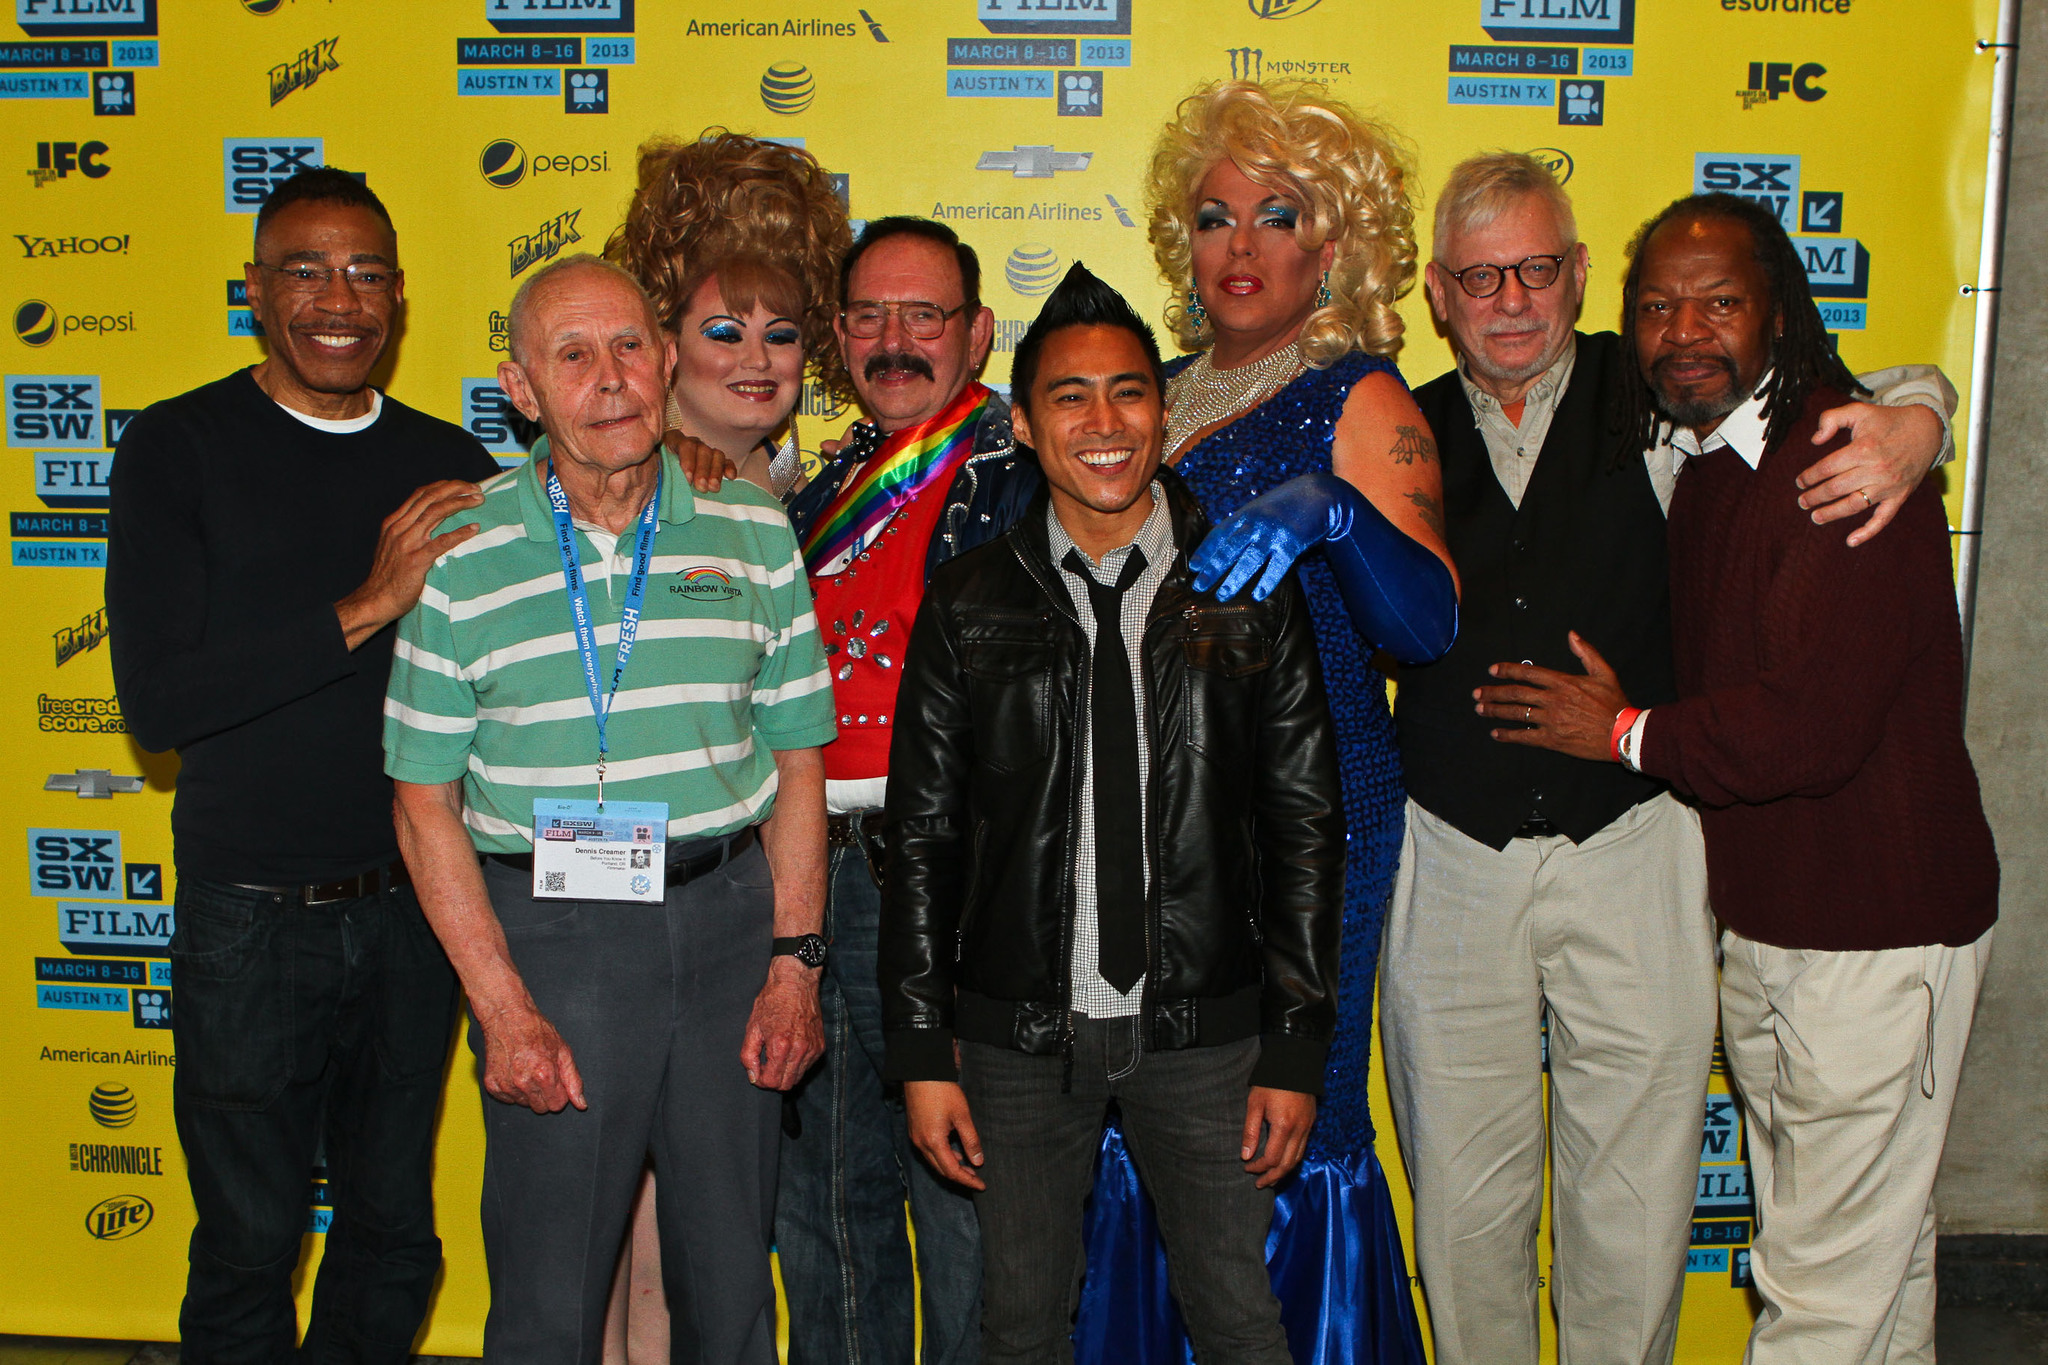 PJ Raval, Ty Martin, Dennis Creamer, Robert Mainor, Carly Davin Nation, and Cassie Cass at an event for Before You Know It (2013)